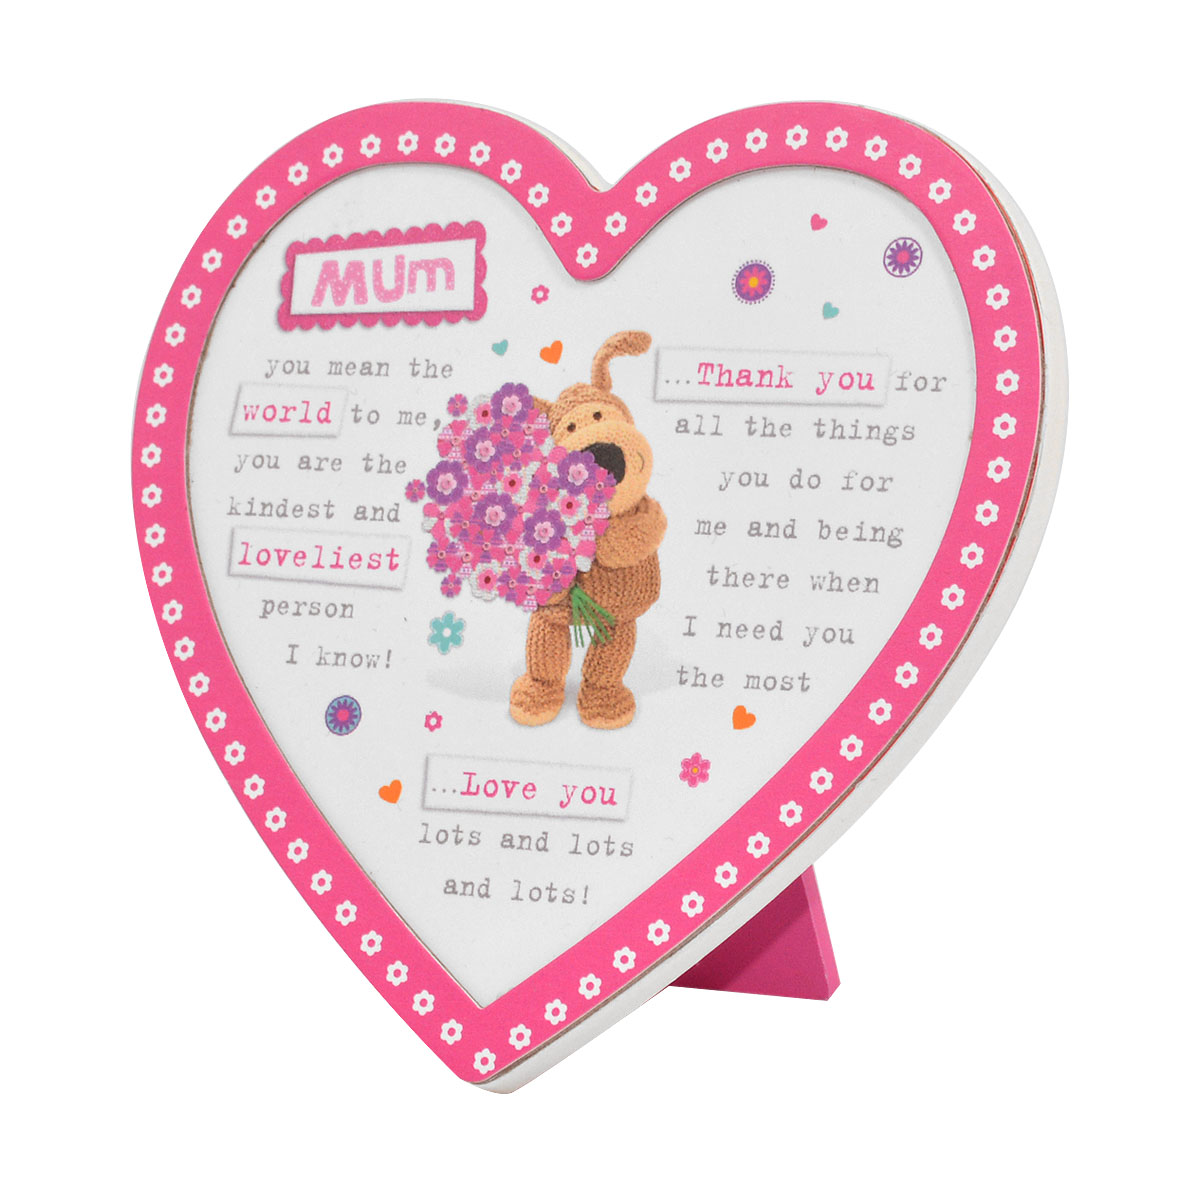 Boofle Wooden Heart Shaped Mum Poem Plaque | Gifts | Love Kates